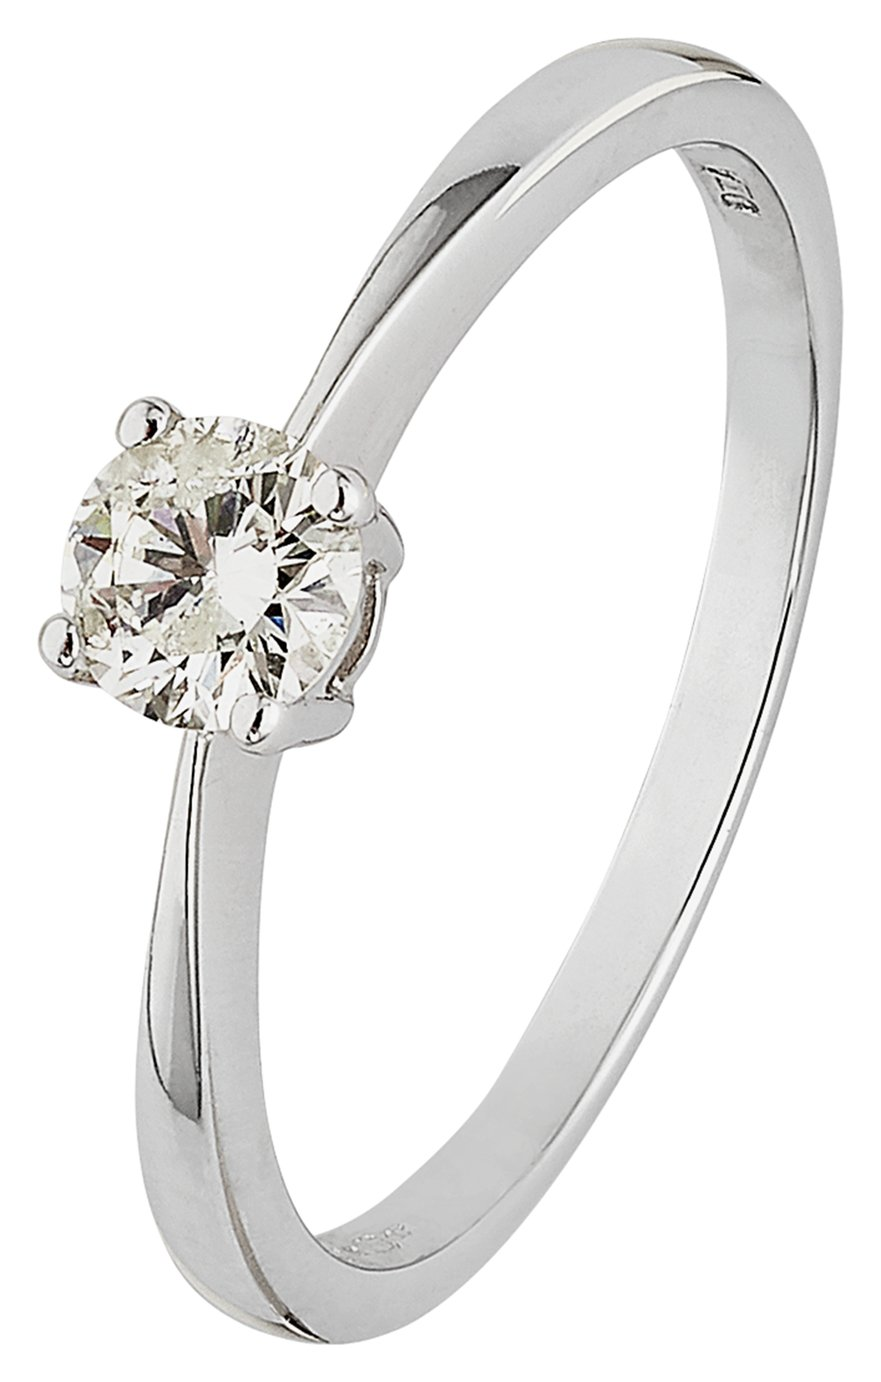 Revere 9ct White Gold 0.33ct Diamond Solitaire Ring - Size N